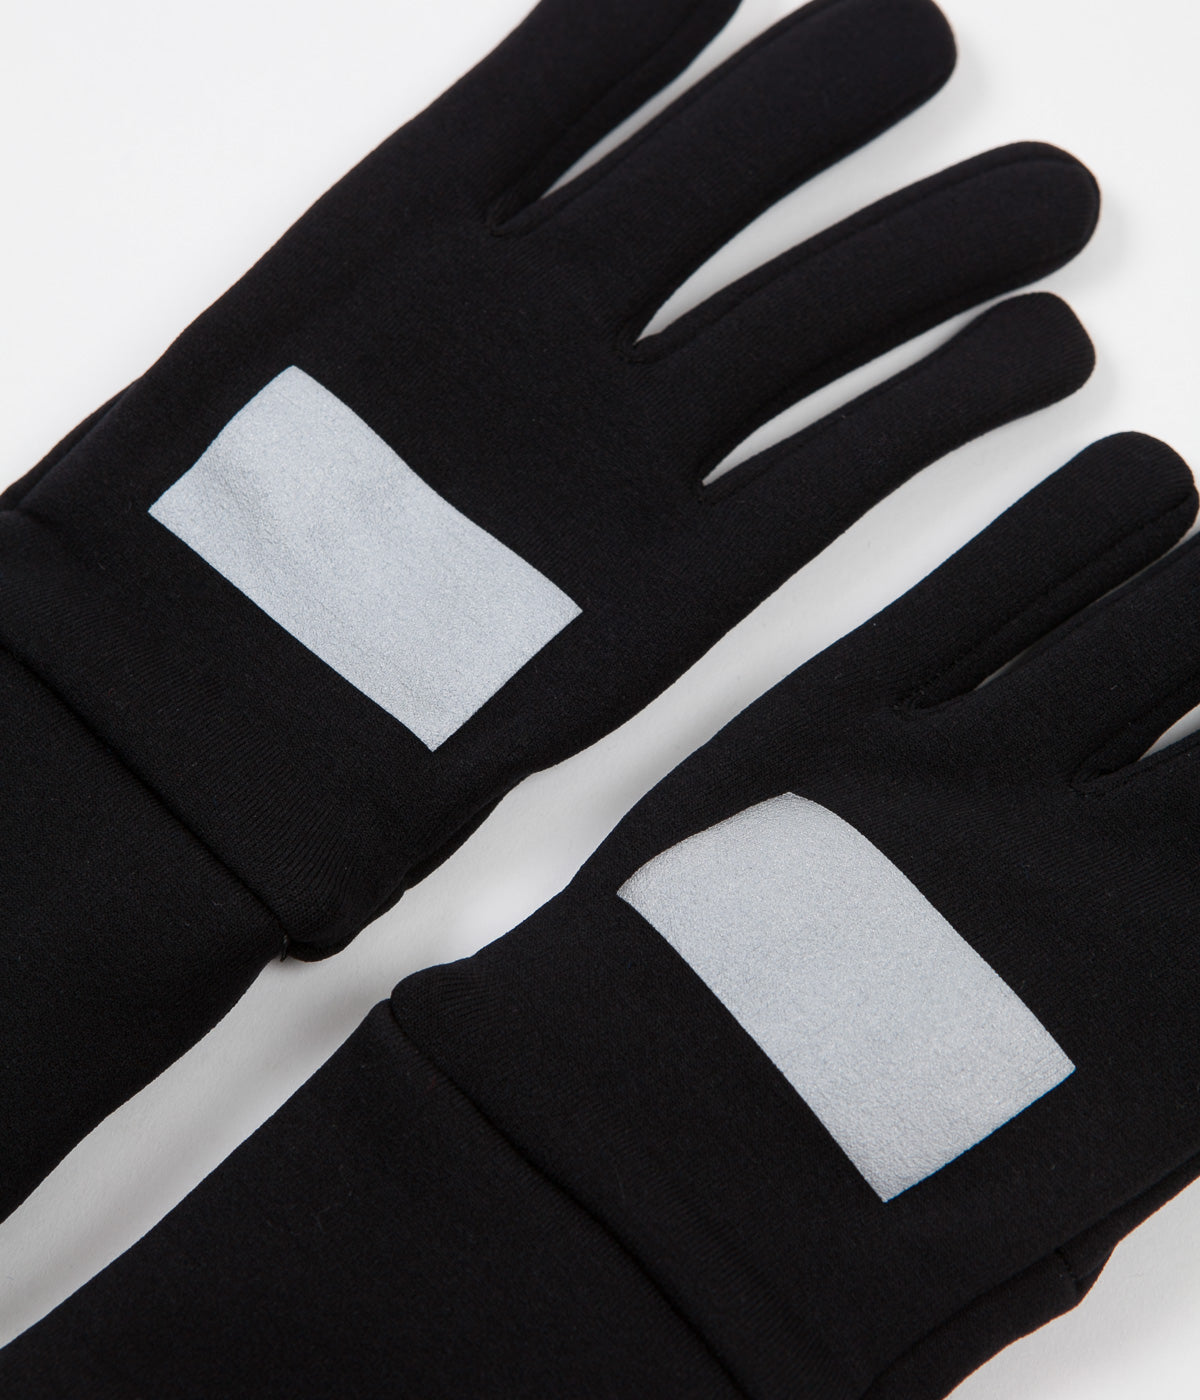 Soulland X 66¡North Gloves - Black